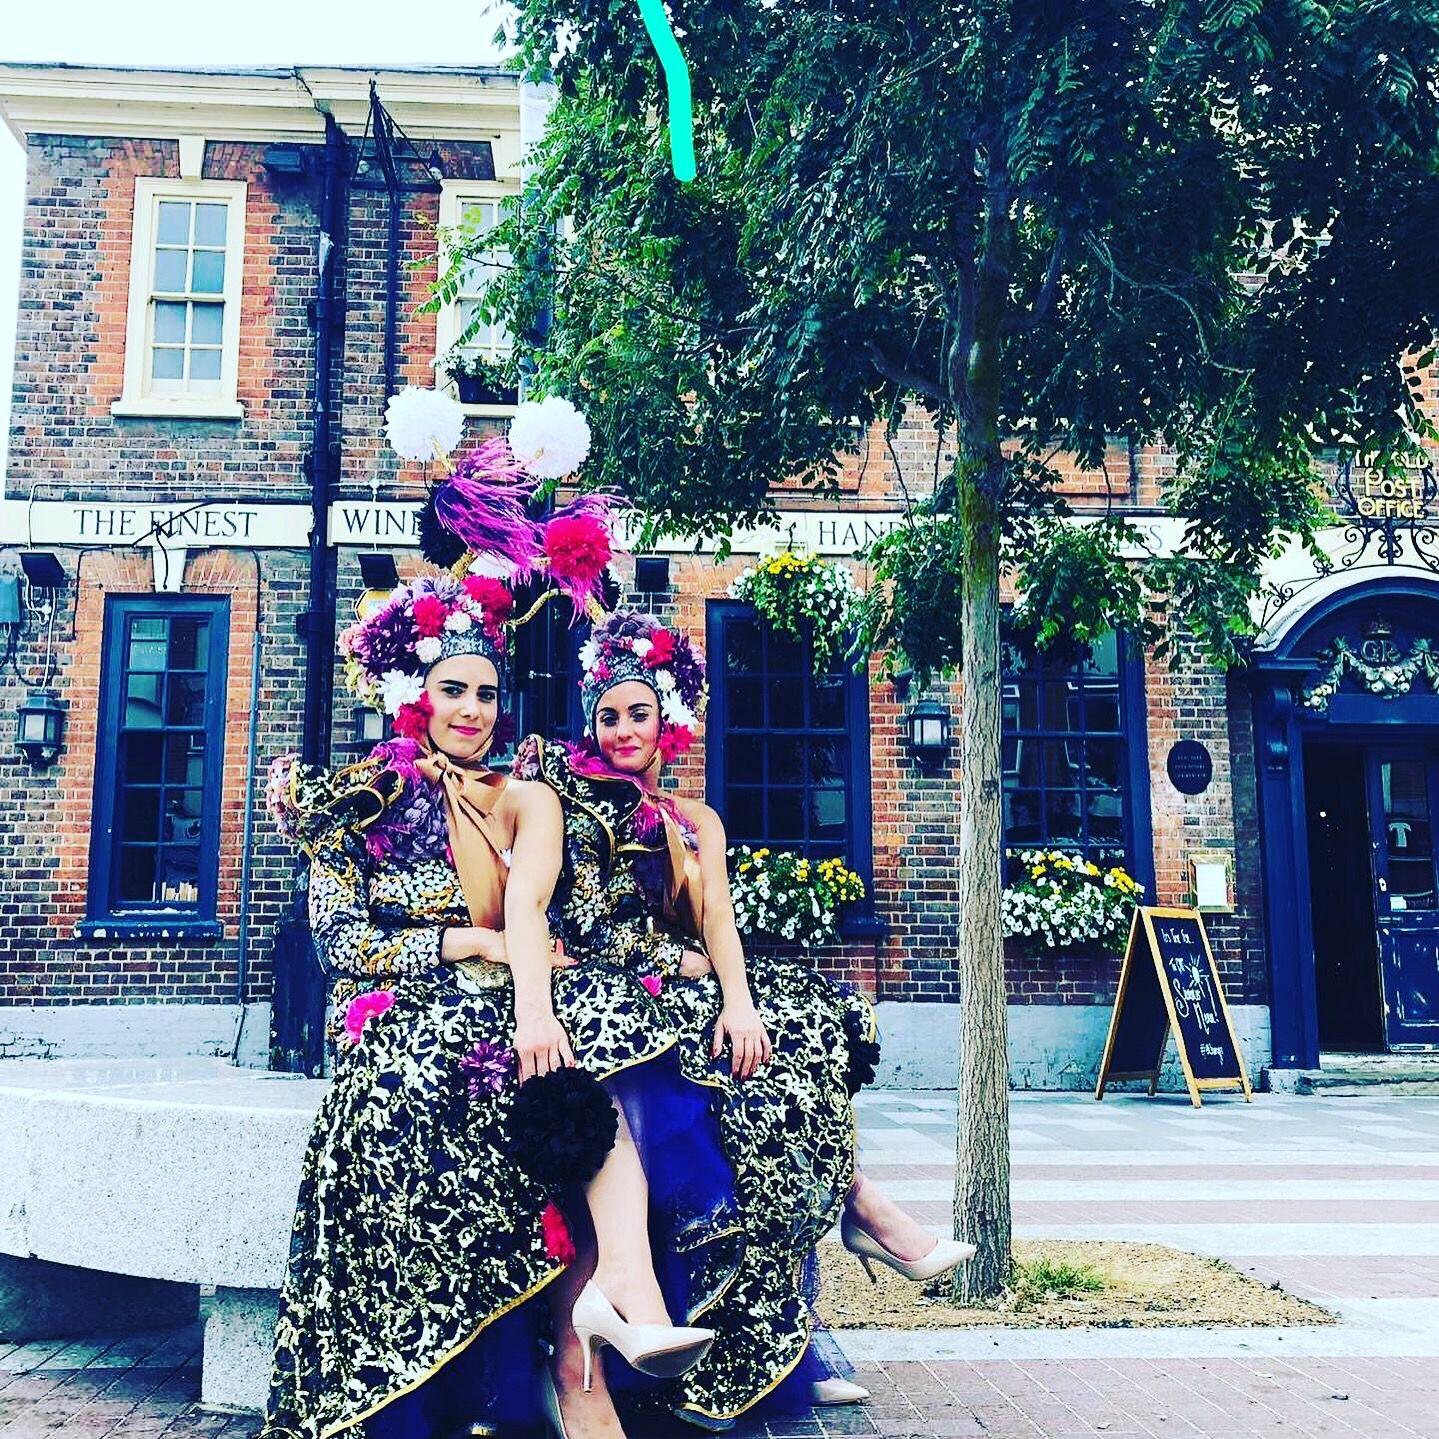 Two women in elaborate costumes stand back to back in a town square